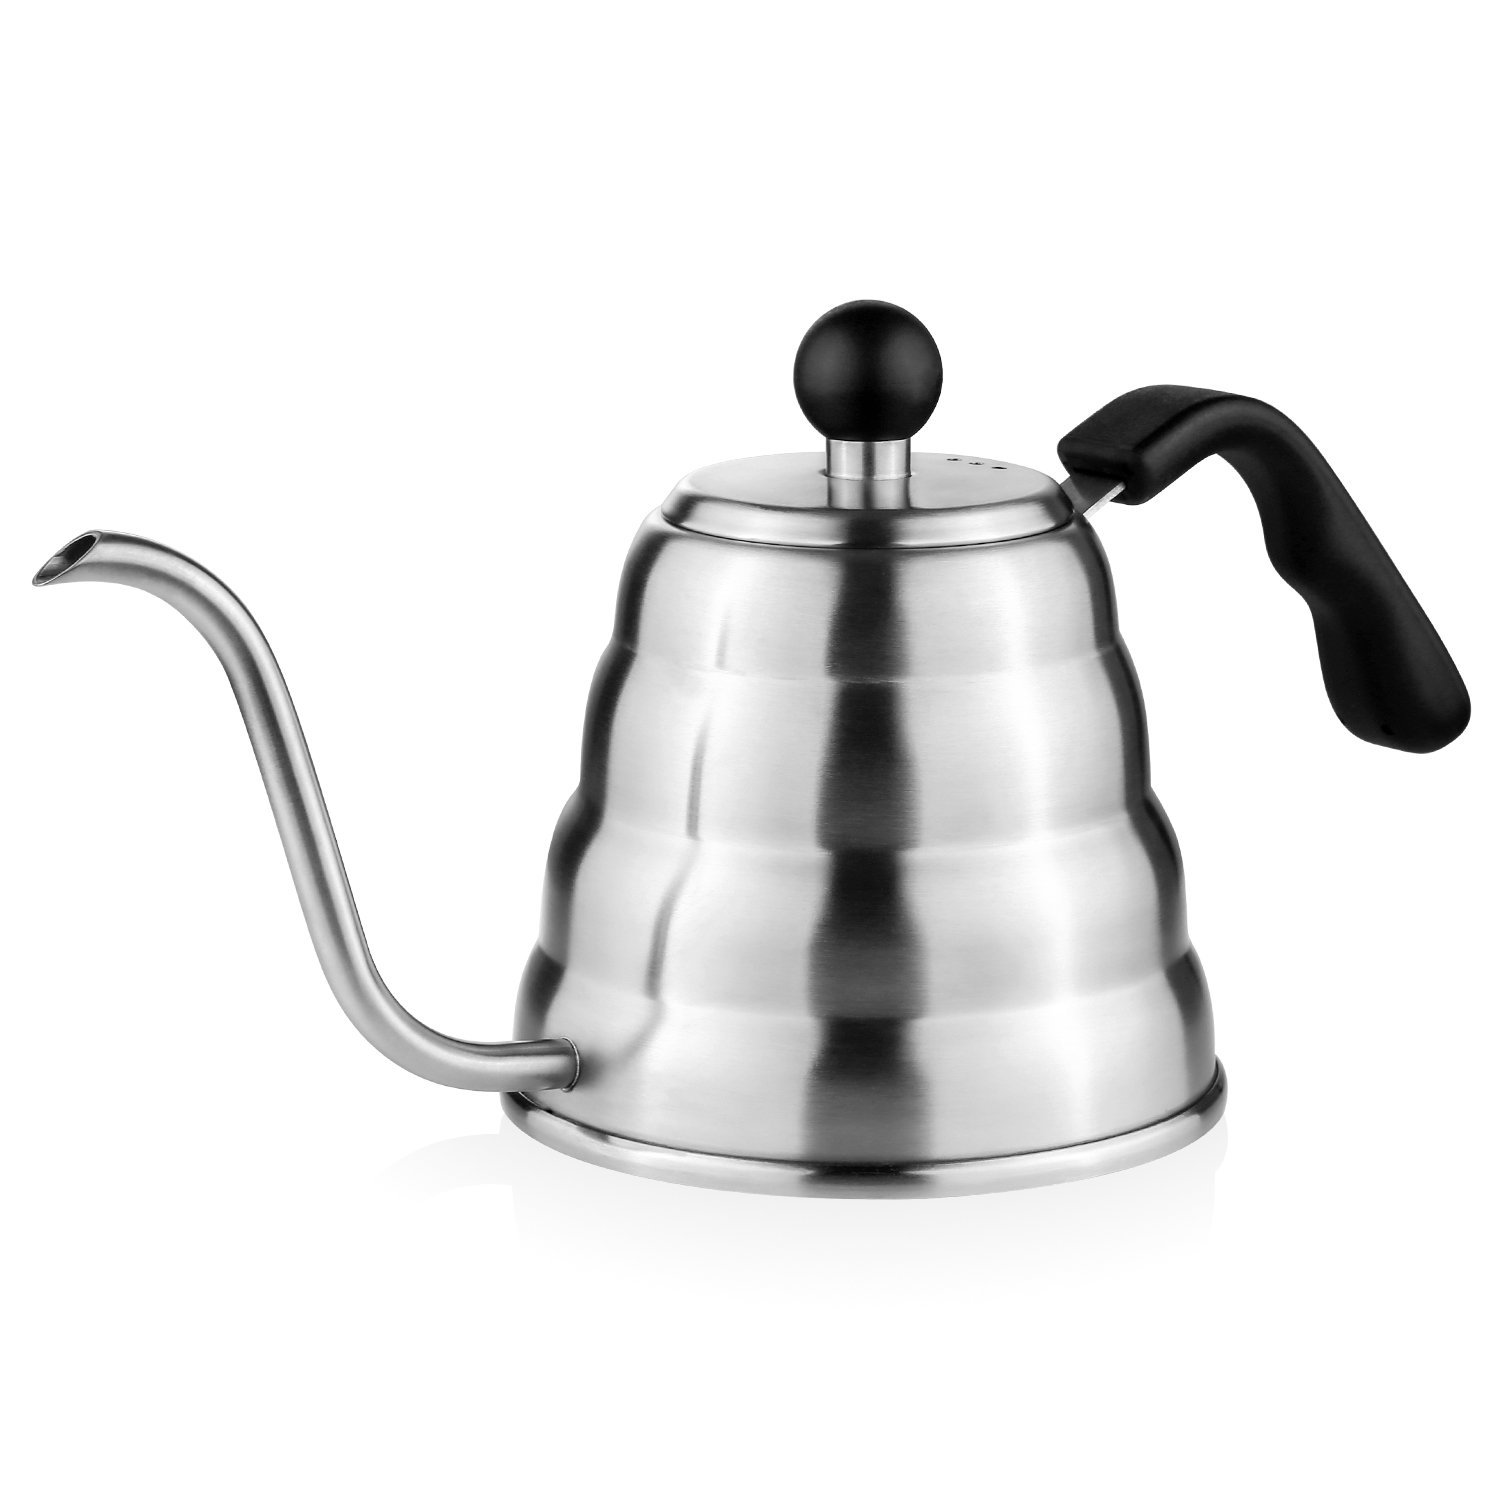 POUR OVER Coffee Kettle 1.2L - For Perfect Hand Drip Coffee kettle